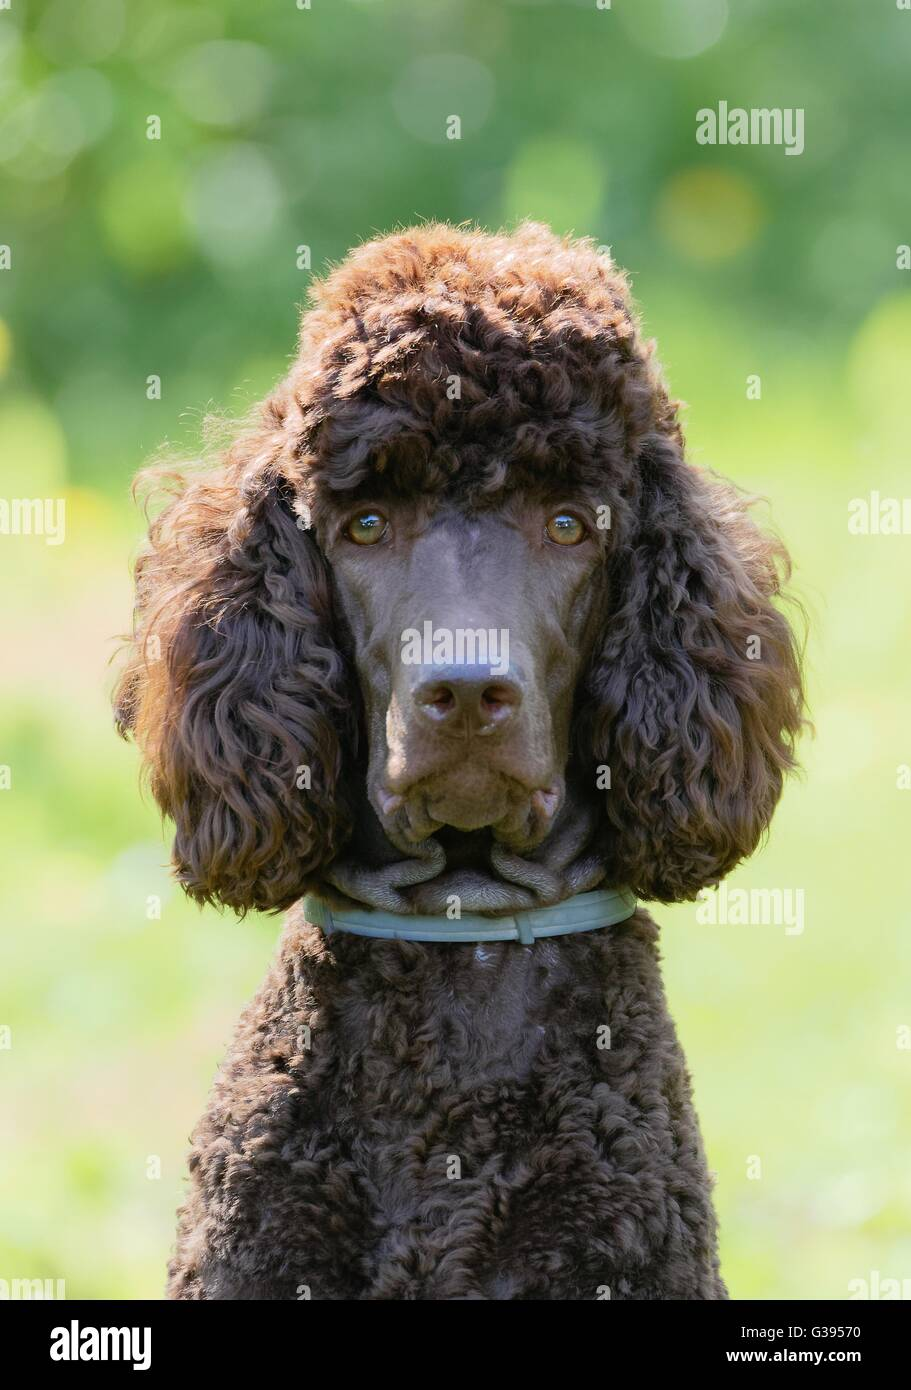 Poodle portrait in the summer with bright green background. Brown standard poodle sitting on the grass with smart - Stock Image